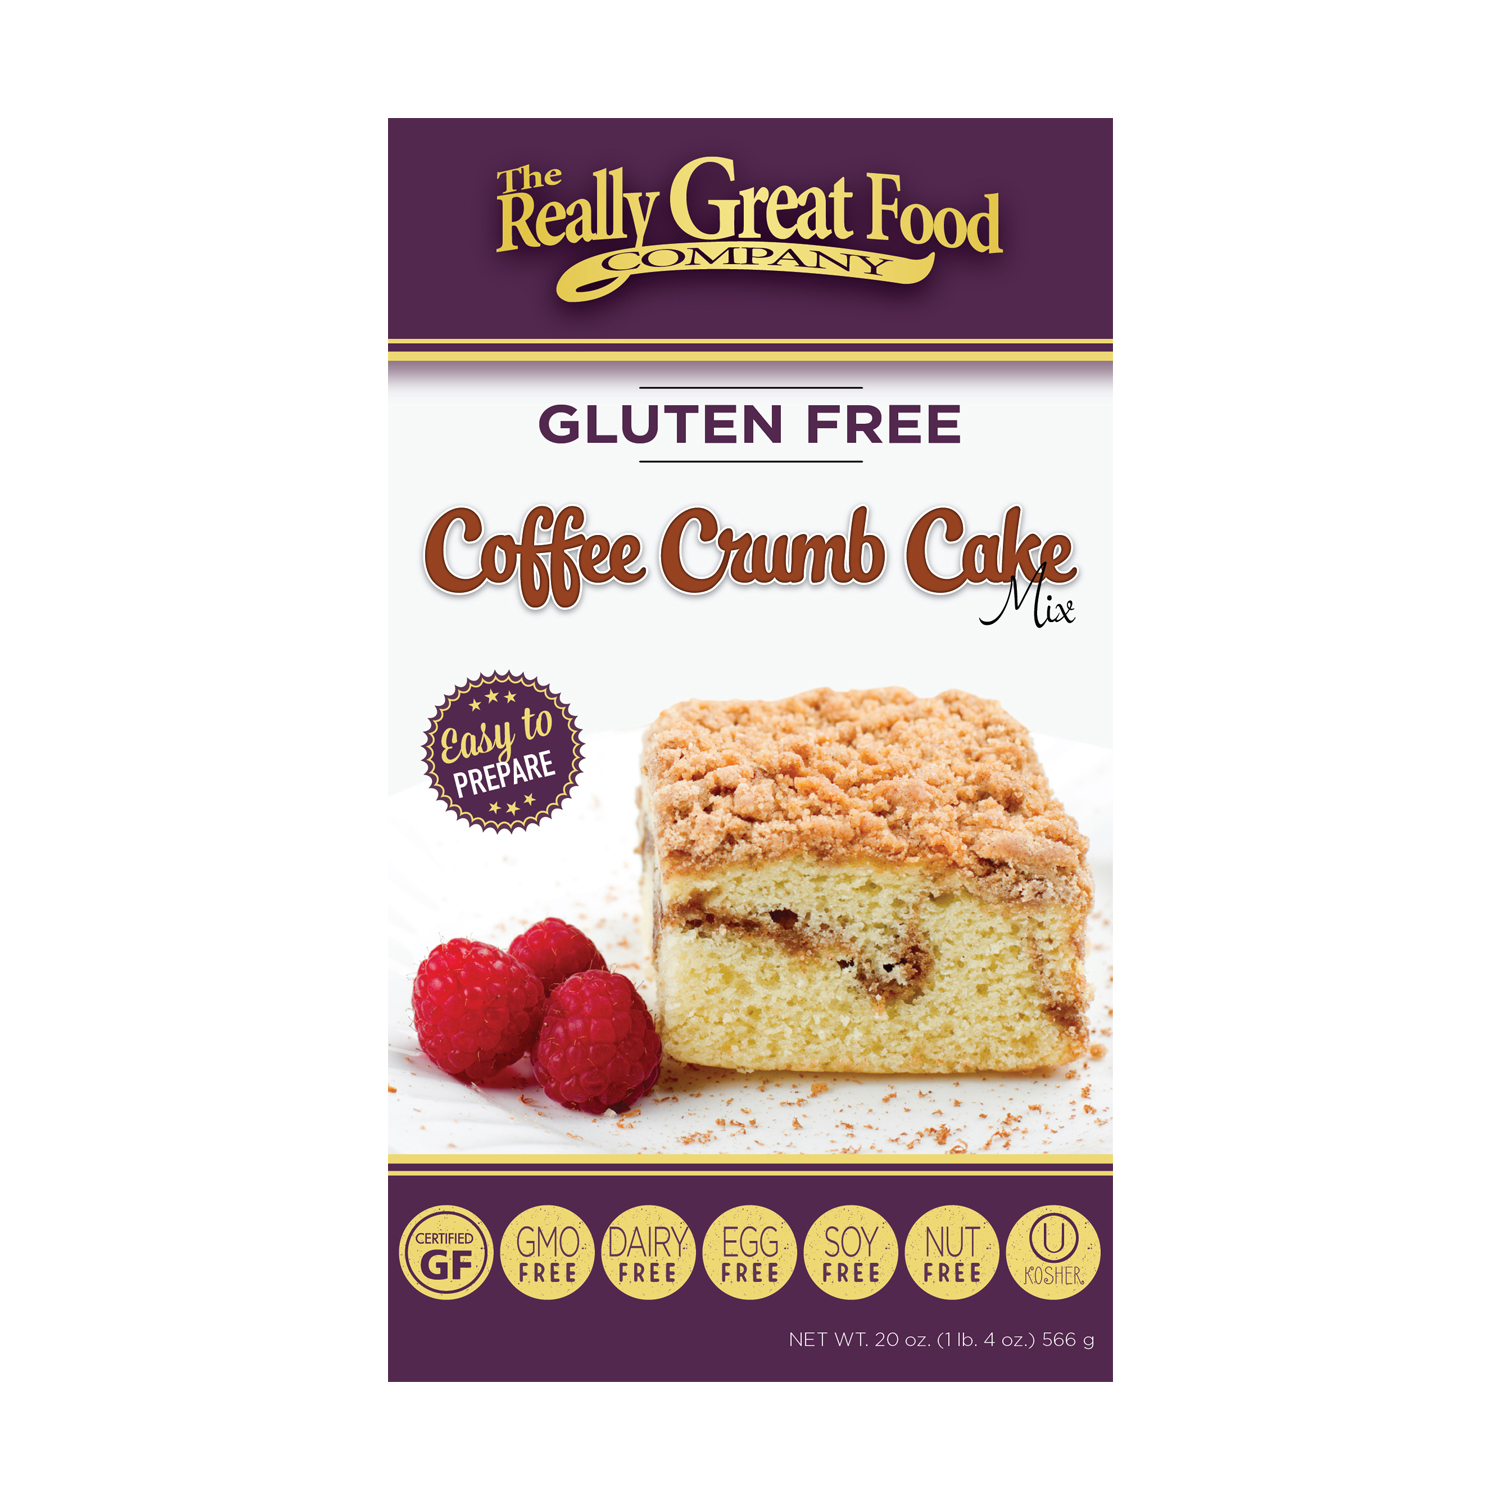 Gluten-Free Coffee Cake Mix